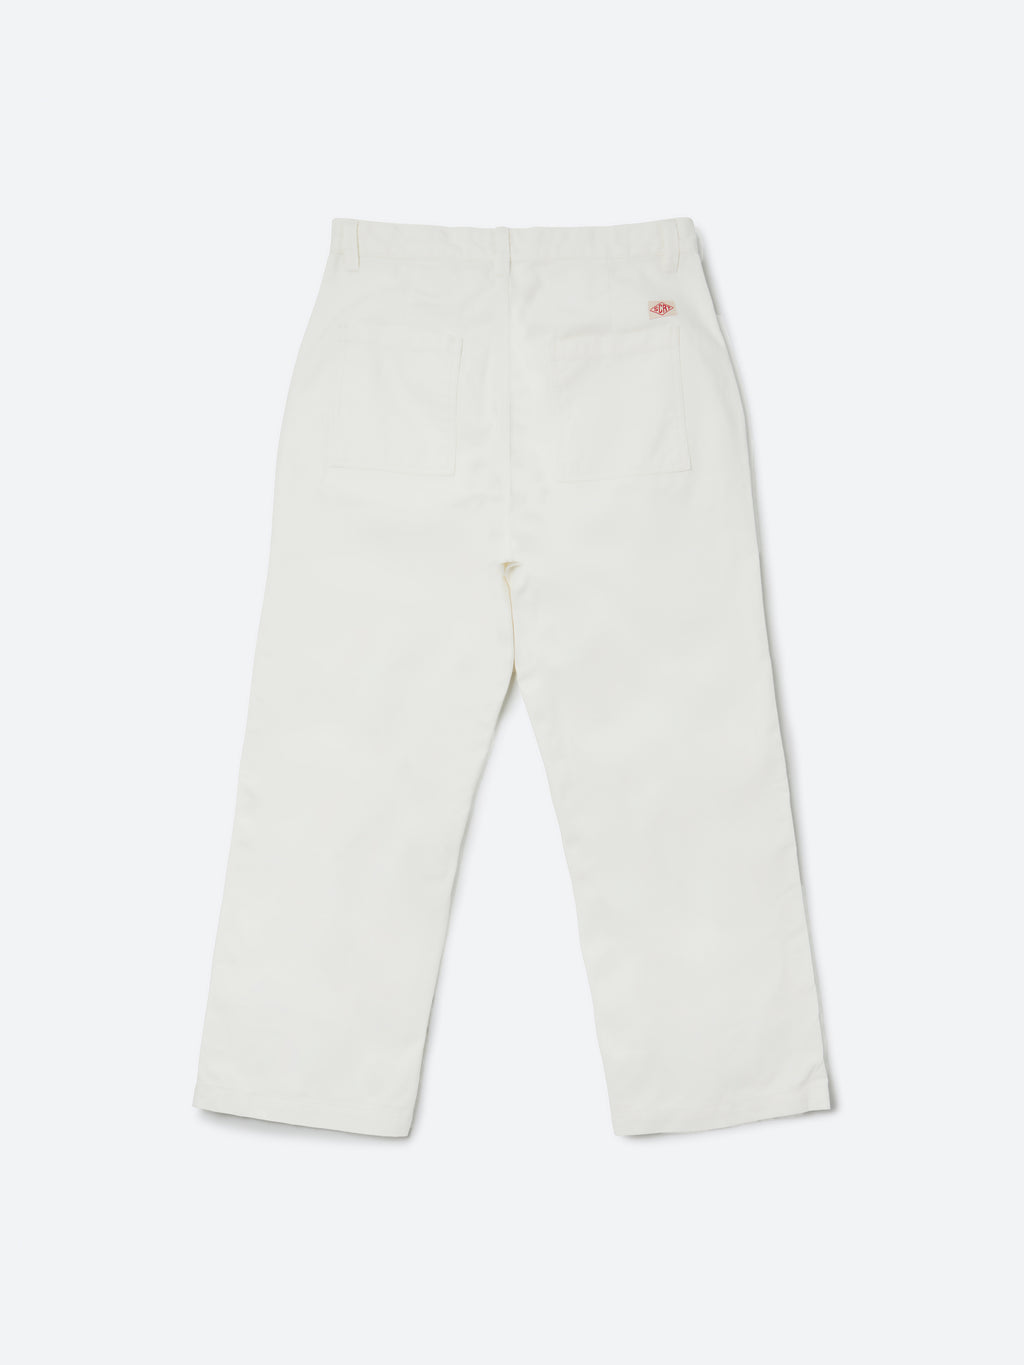 Studio Set Trousers - Bone